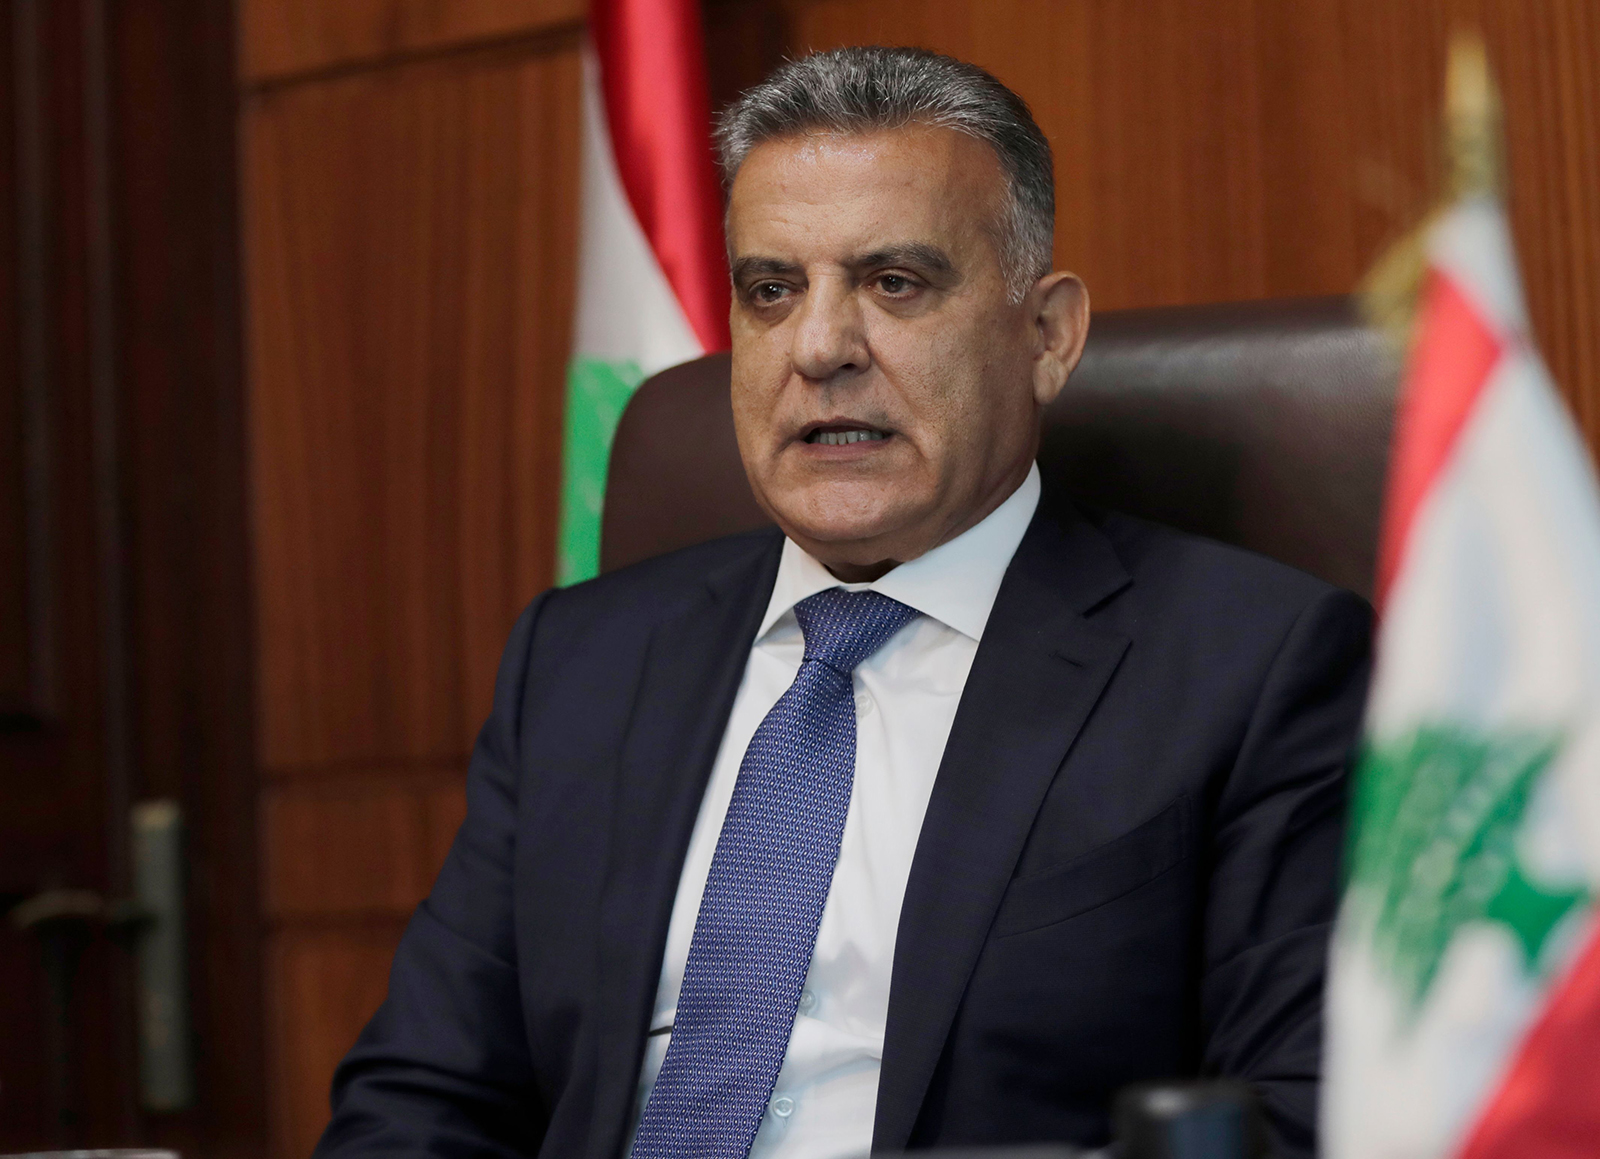 The head of Lebanon's General Security apparatus, Abbas Ibrahim, speaks during an interview at his office in the capital Beirut on July 22.